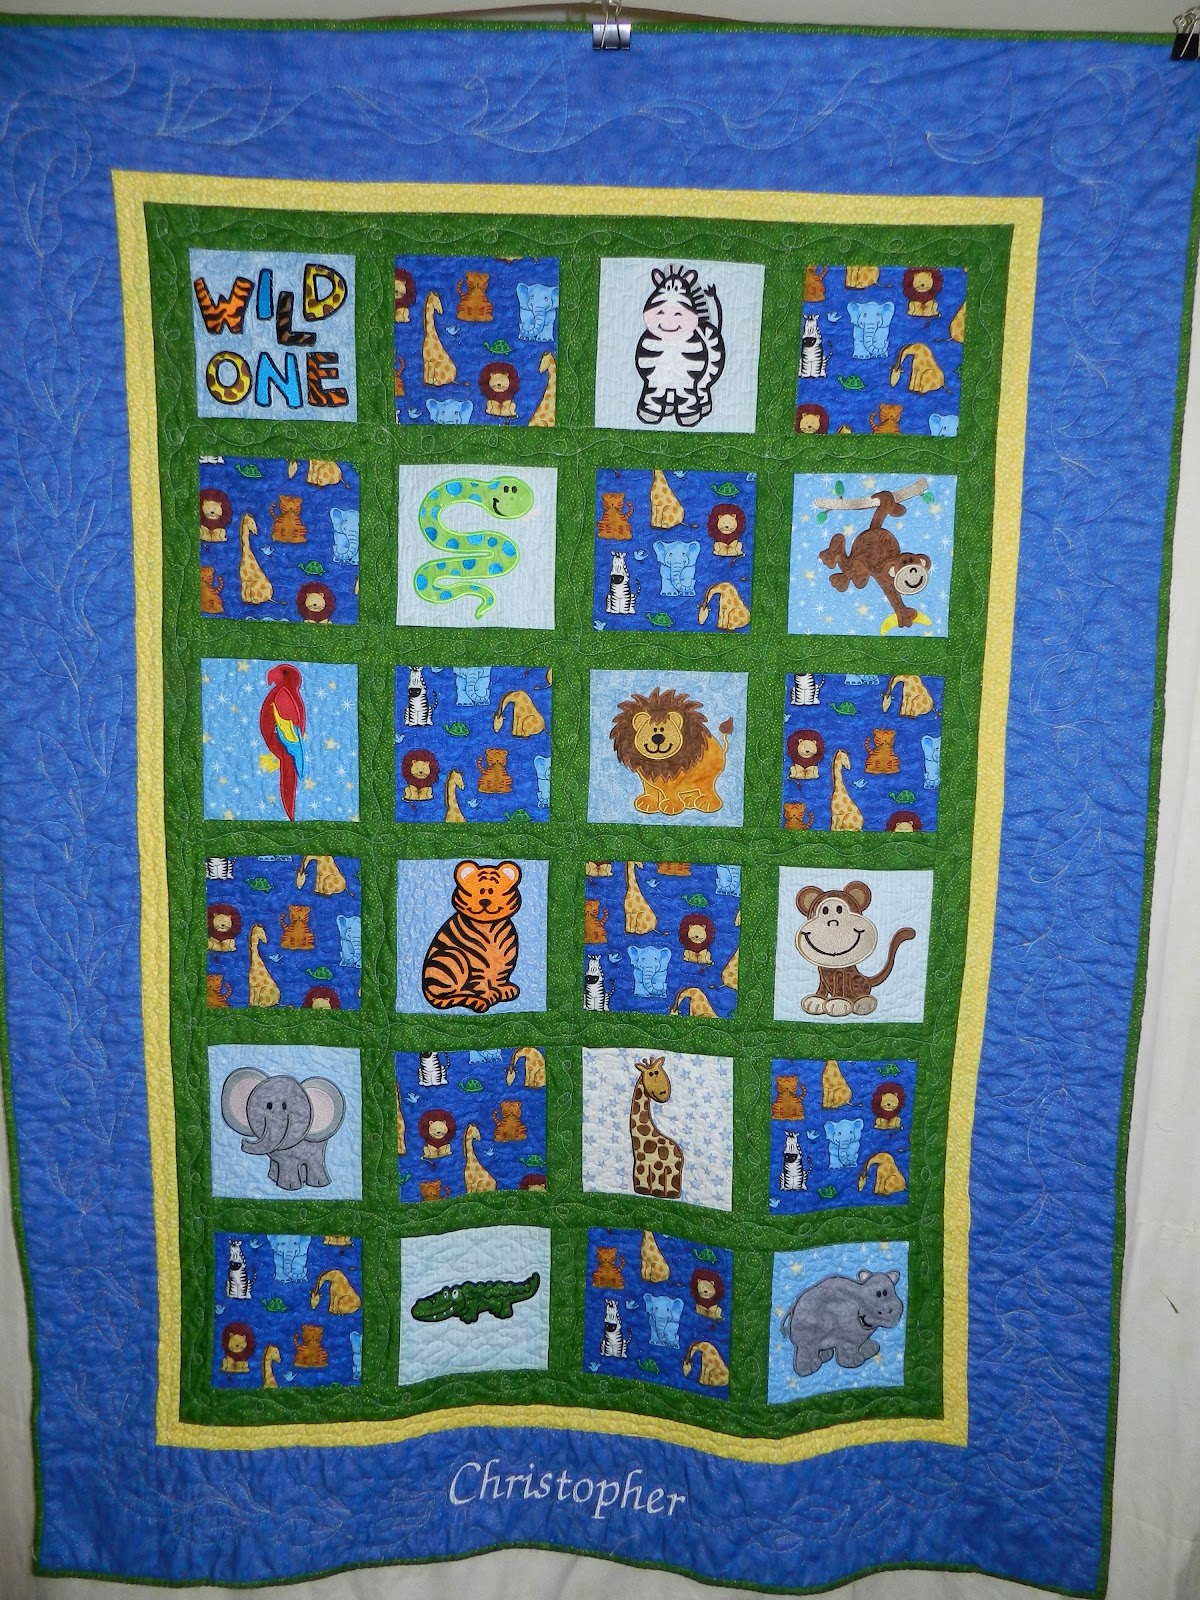 Dinah S Quilts And Embroidery Jungle Animals